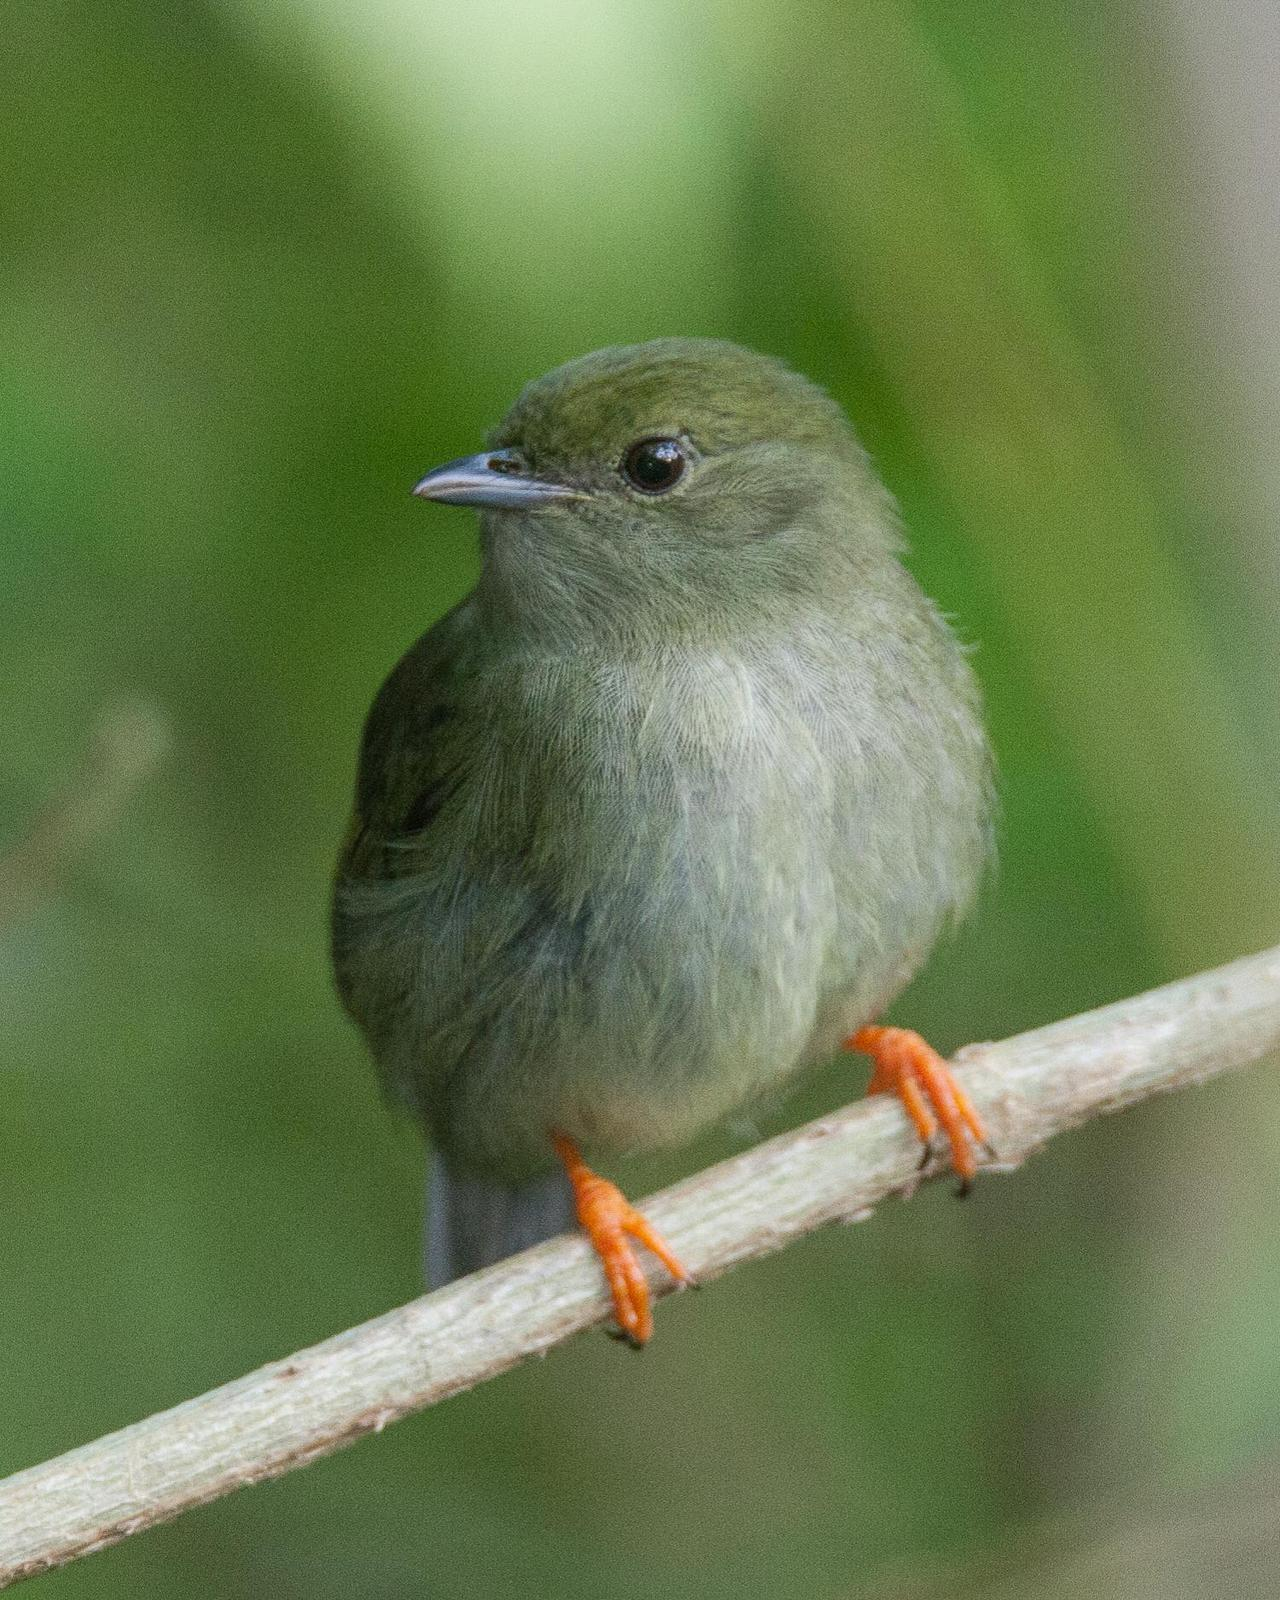 White-bearded Manakin Photo by Robert Lewis